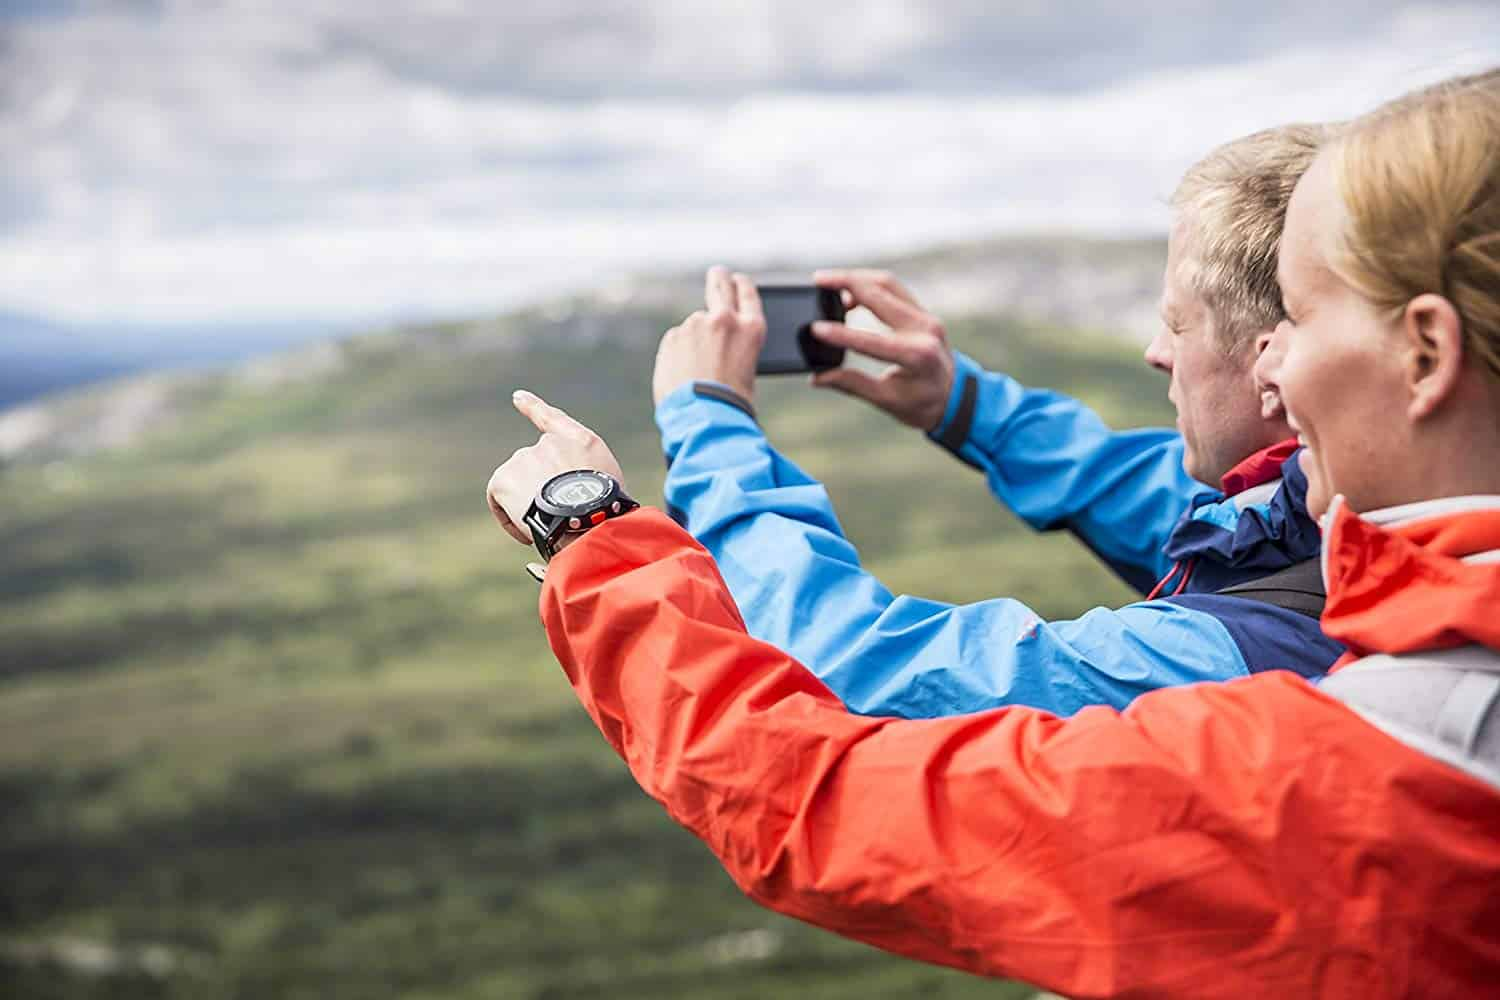 7 Best GPS for Hunting Reviews – Hit the Trail with Confidence in 2018